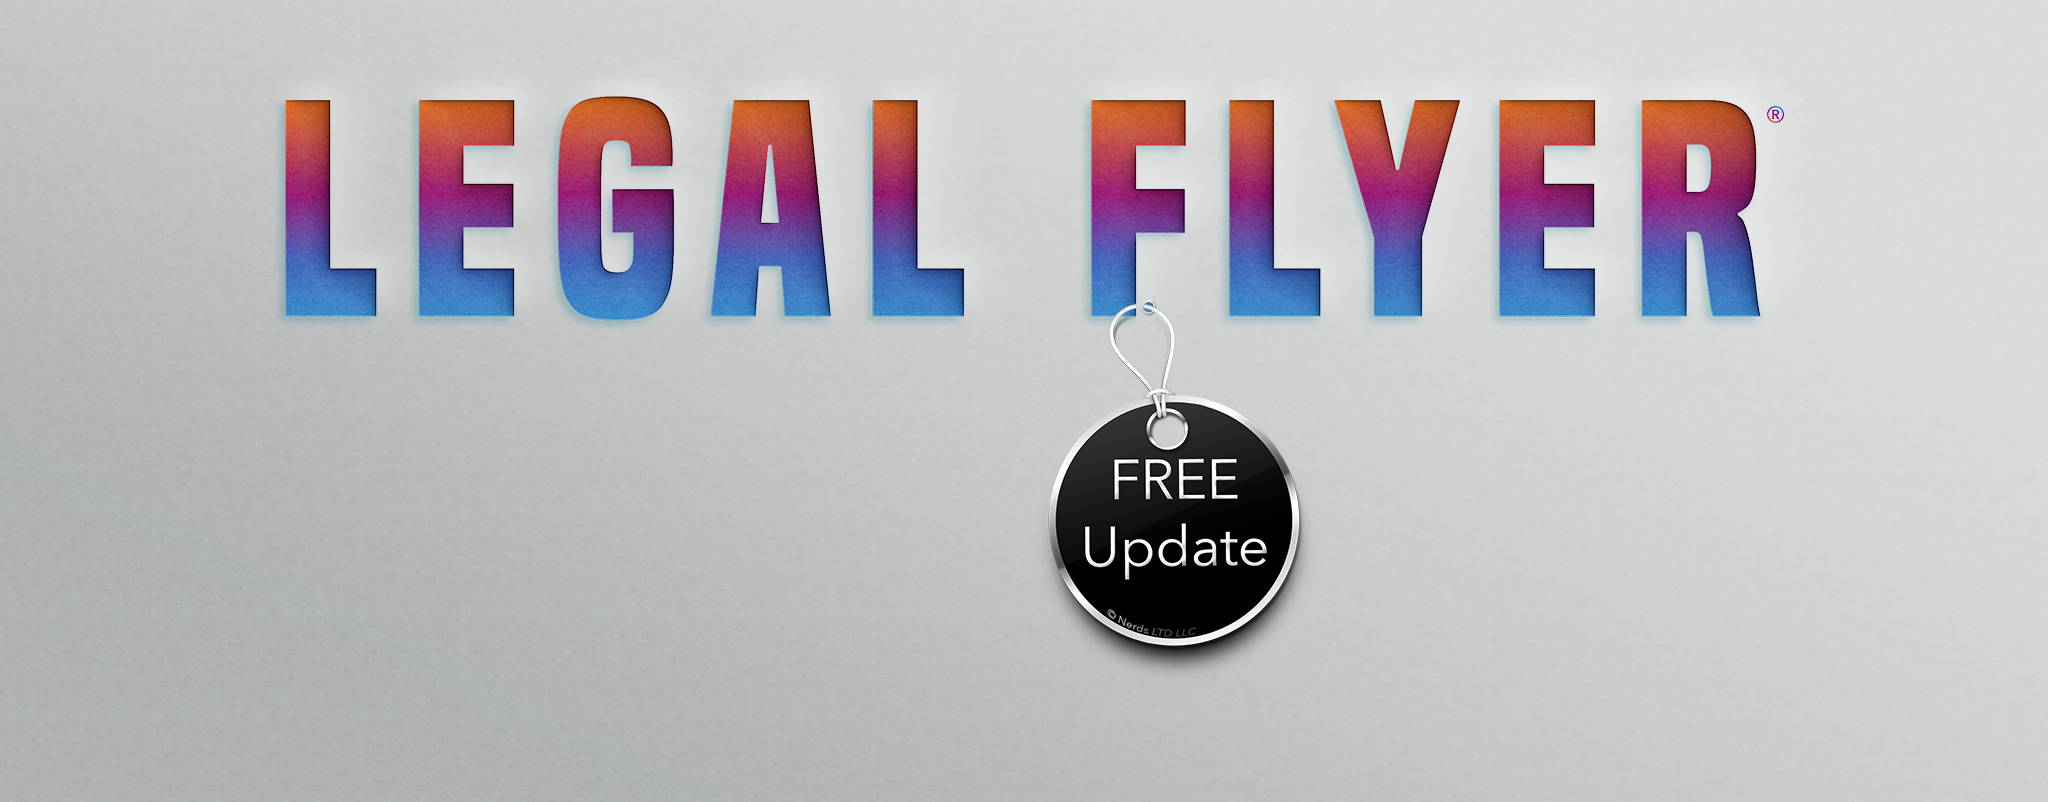 Free update coming soon! Buy Legal Flyer®  and you'll get the free update when it's approved.